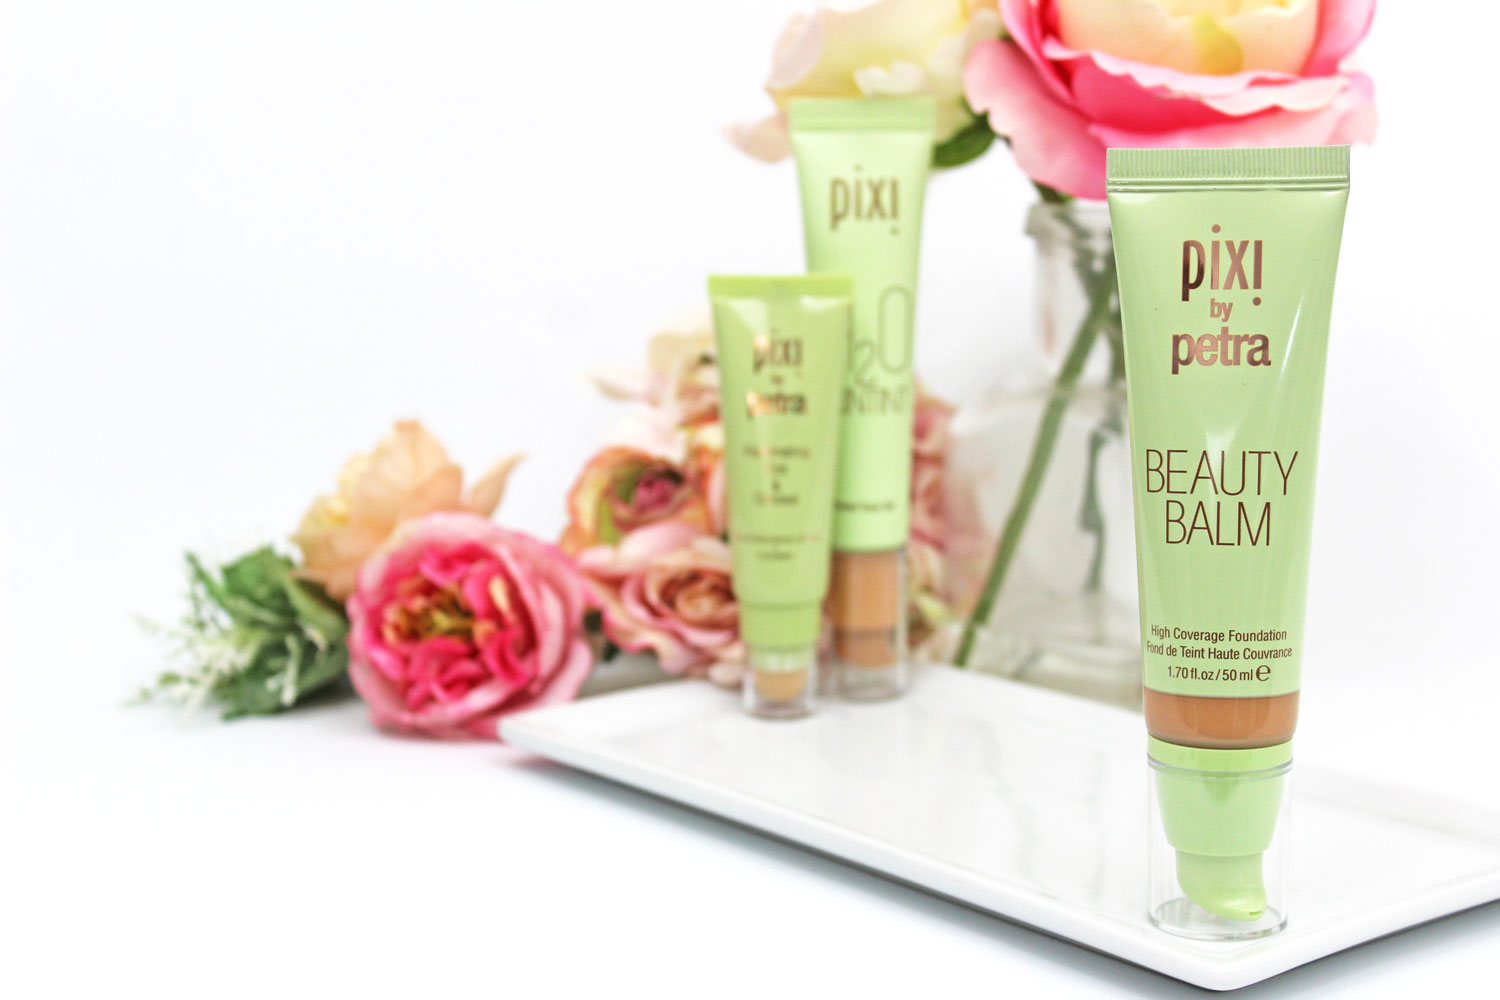 Pixi Beauty Balm - Pixi Beauty foundation comparison swatches